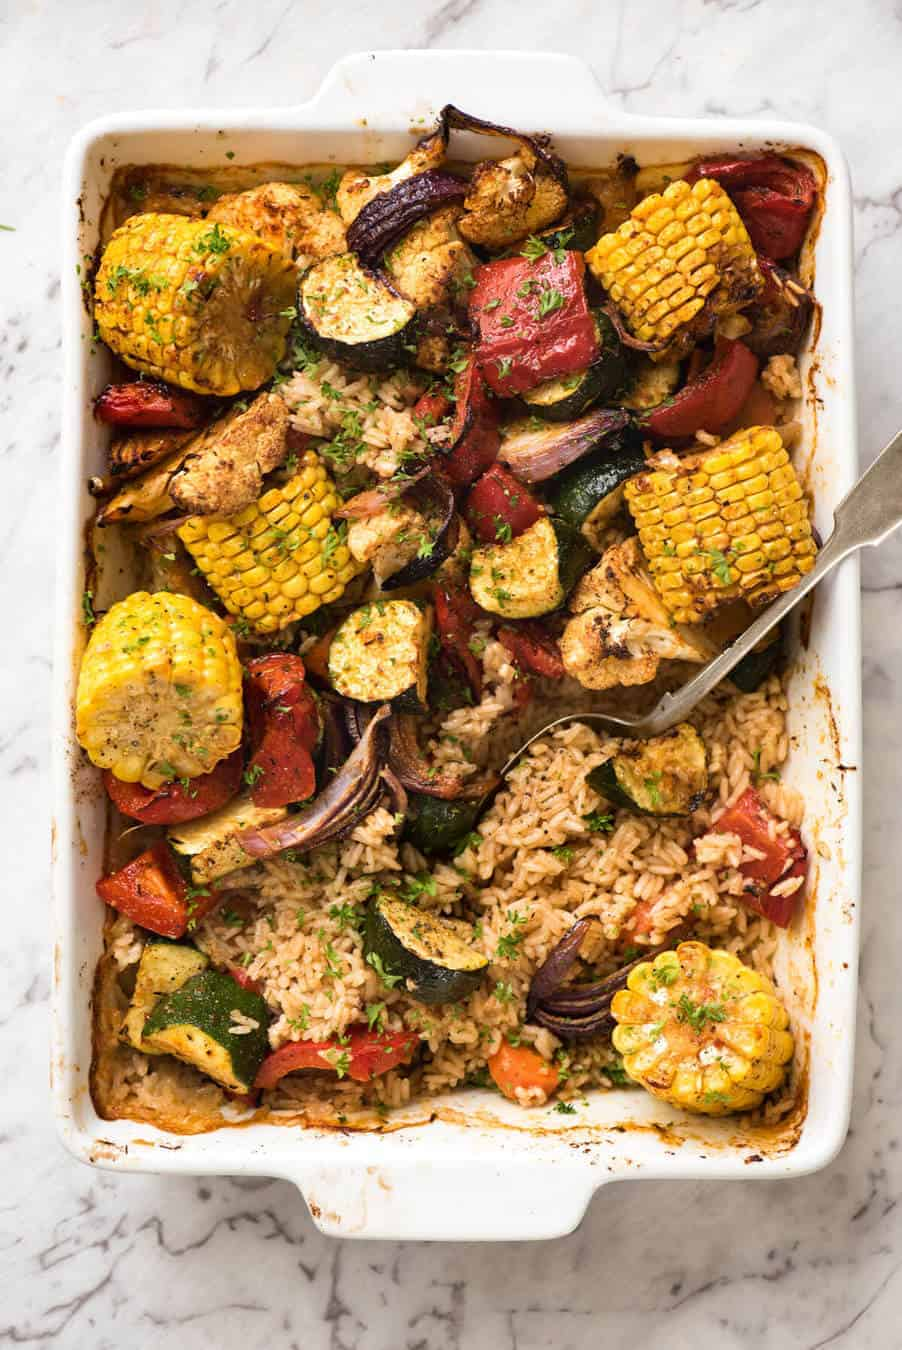 Oven Baked Rice and Vegetables - Fluffy seasoned rice and oven roasted vegetables, all made in ONE pan! Fabulous meal or side, super quick and easy to prep. www.recipetineats.com